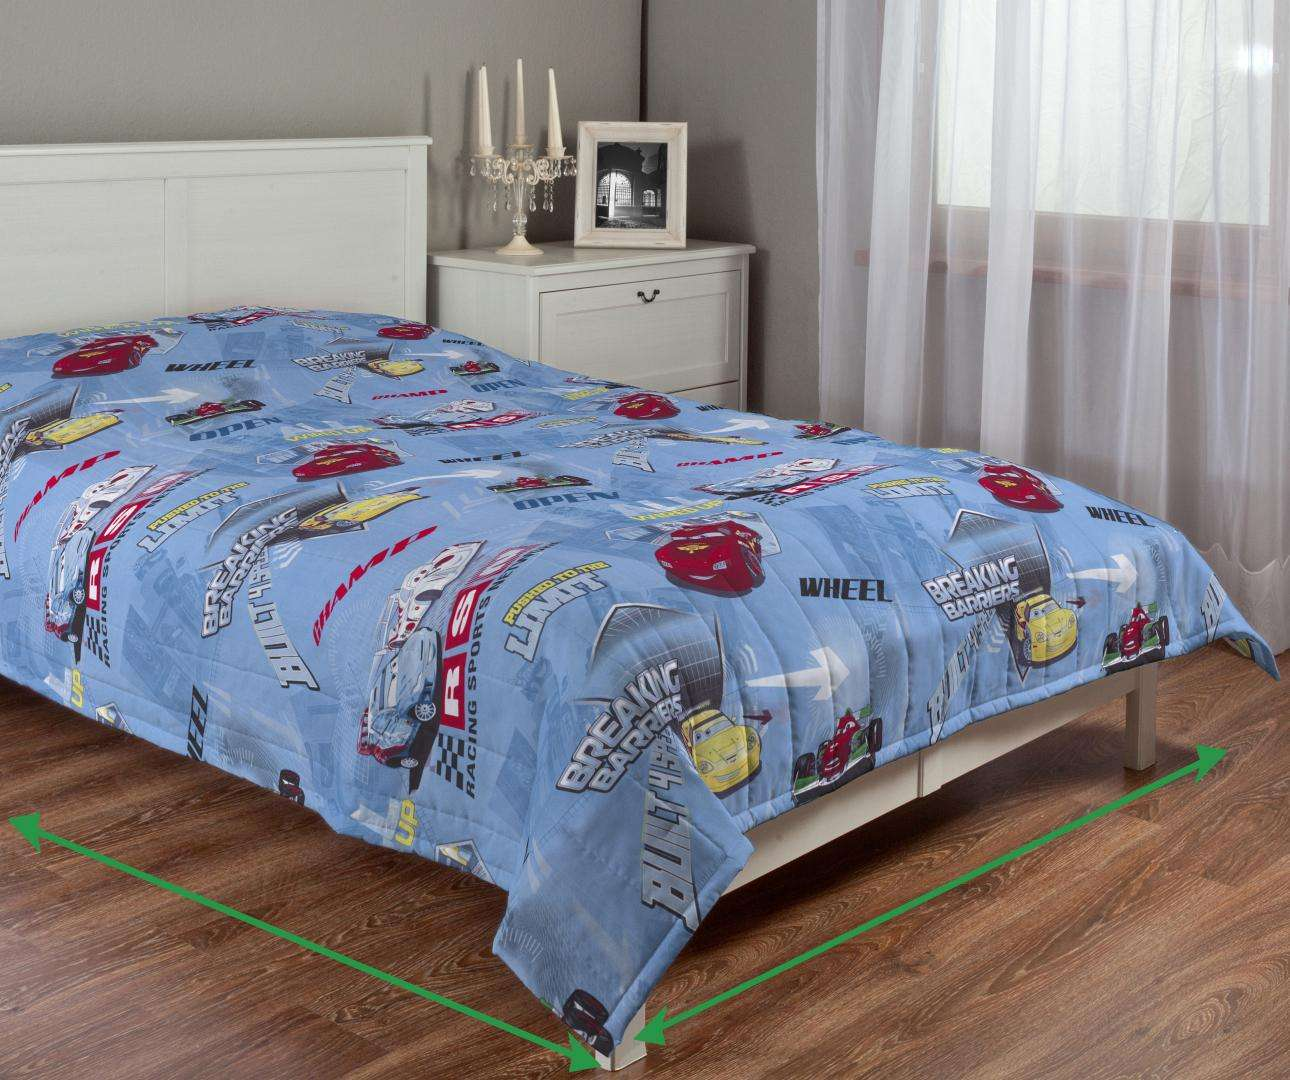 Quilted throw (vertical quilt pattern) in collection Freestyle, fabric: 150-20